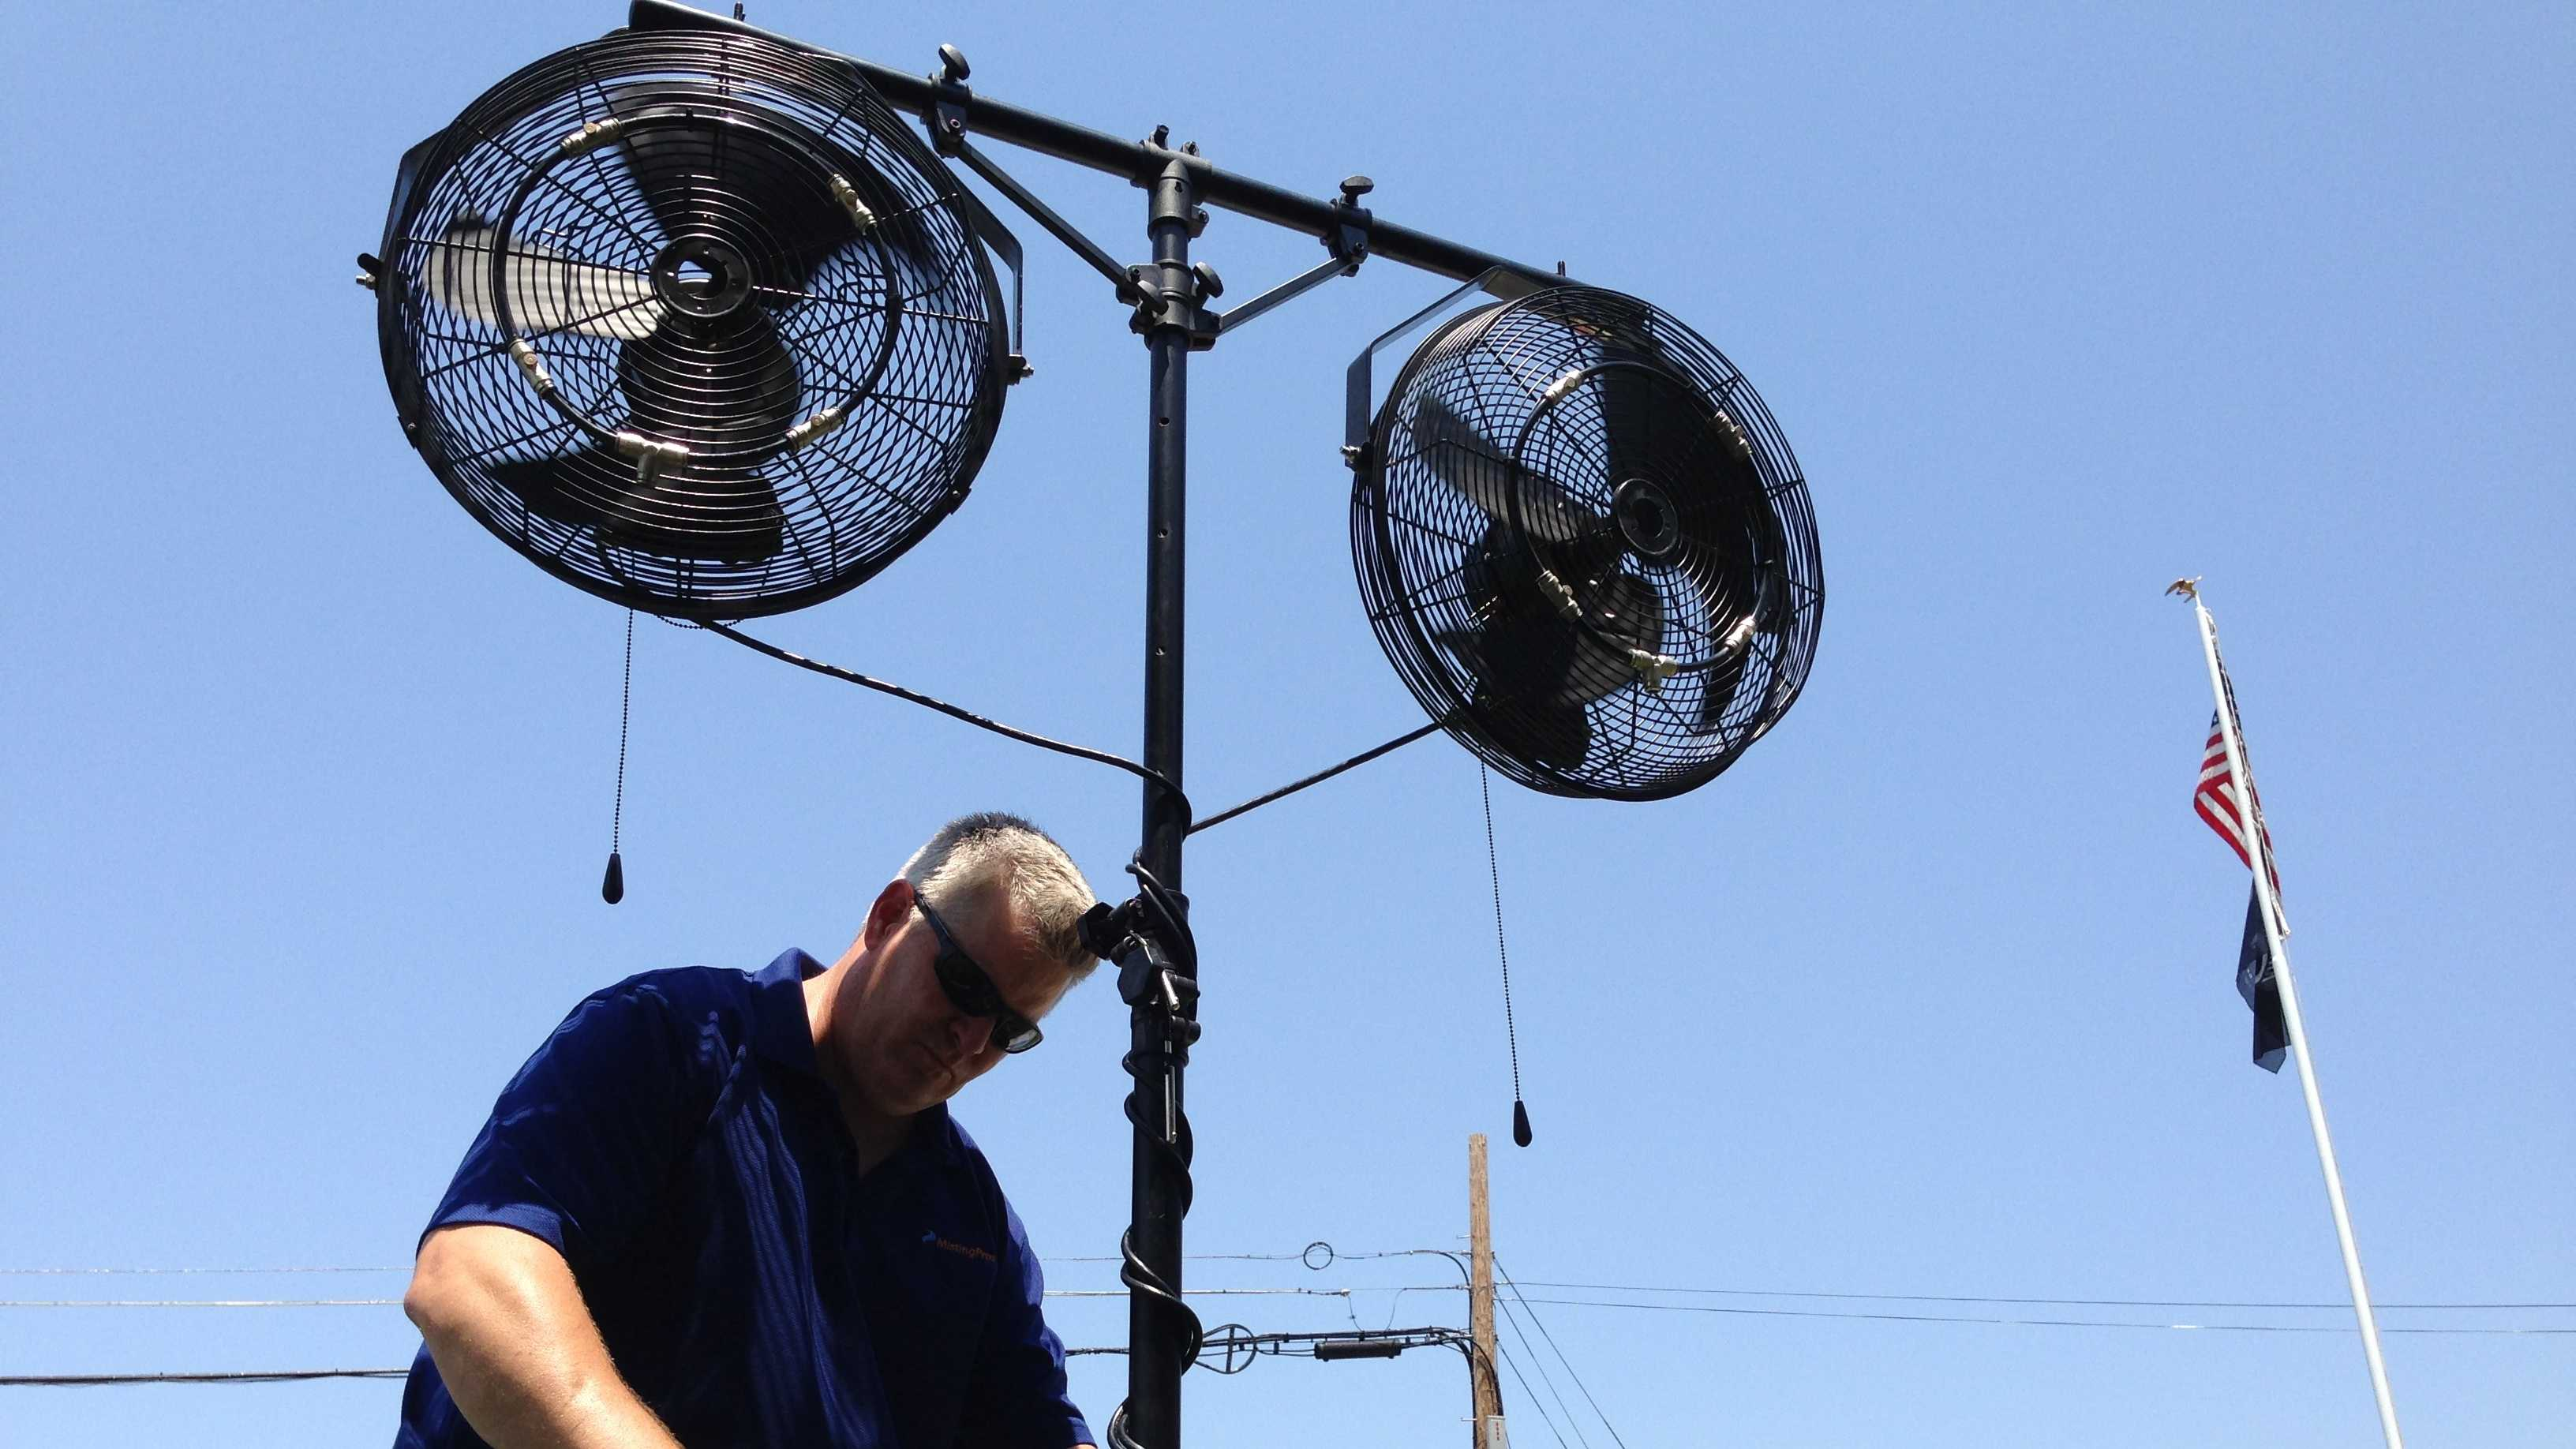 Dave Paul of Misting Pros shows one of the mist-producing fans that he rents.